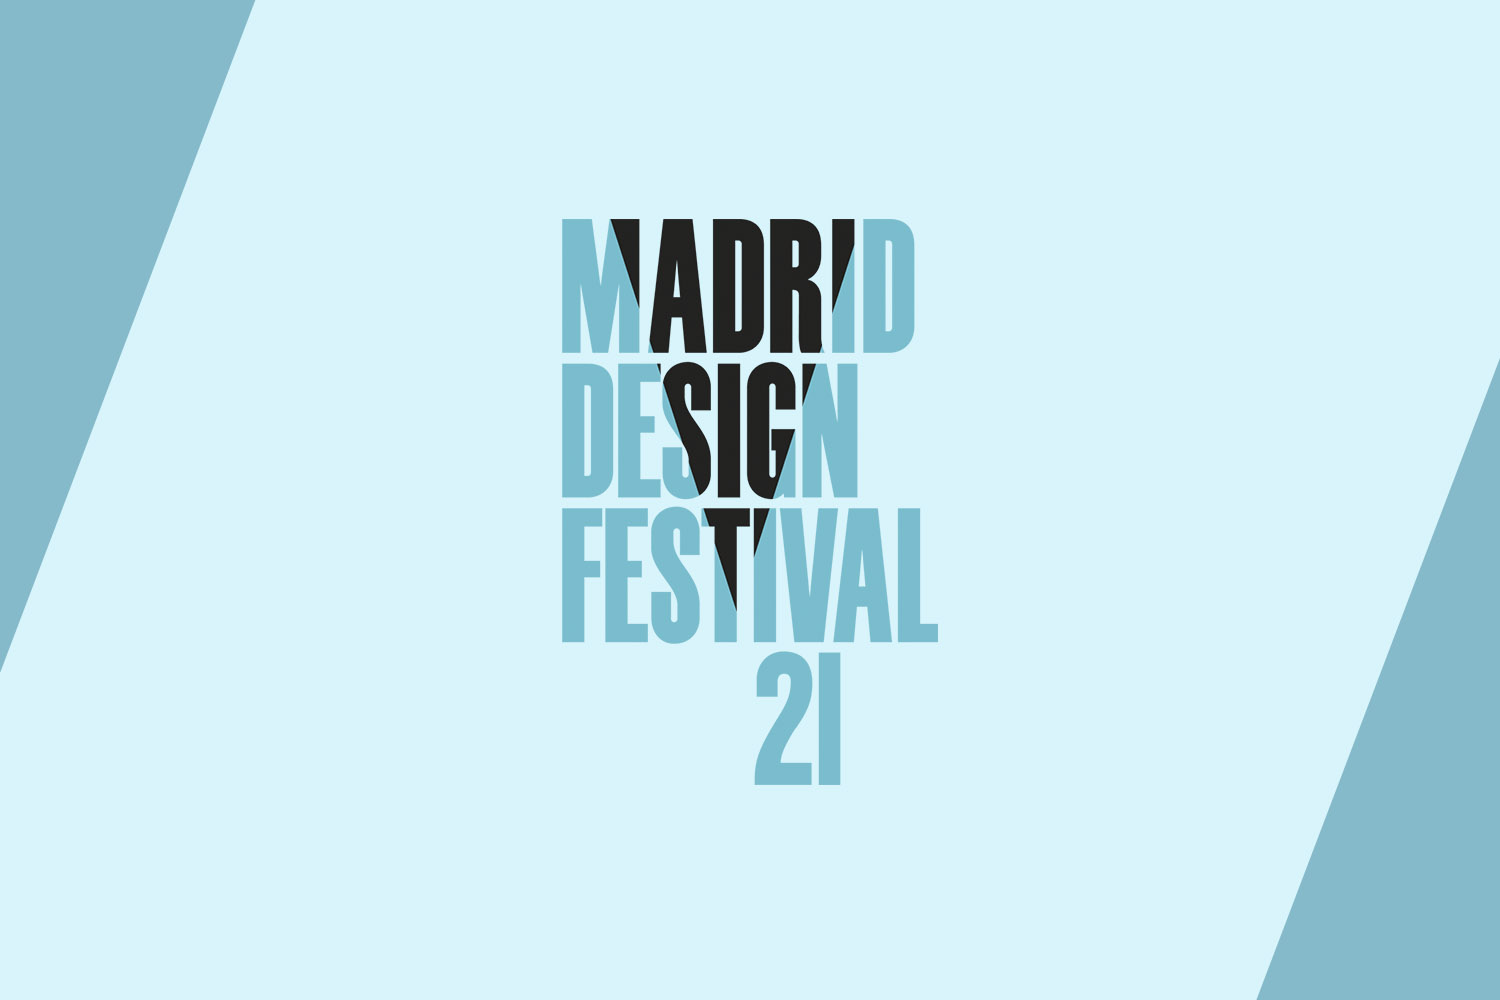 Madrid Design Festival 2021